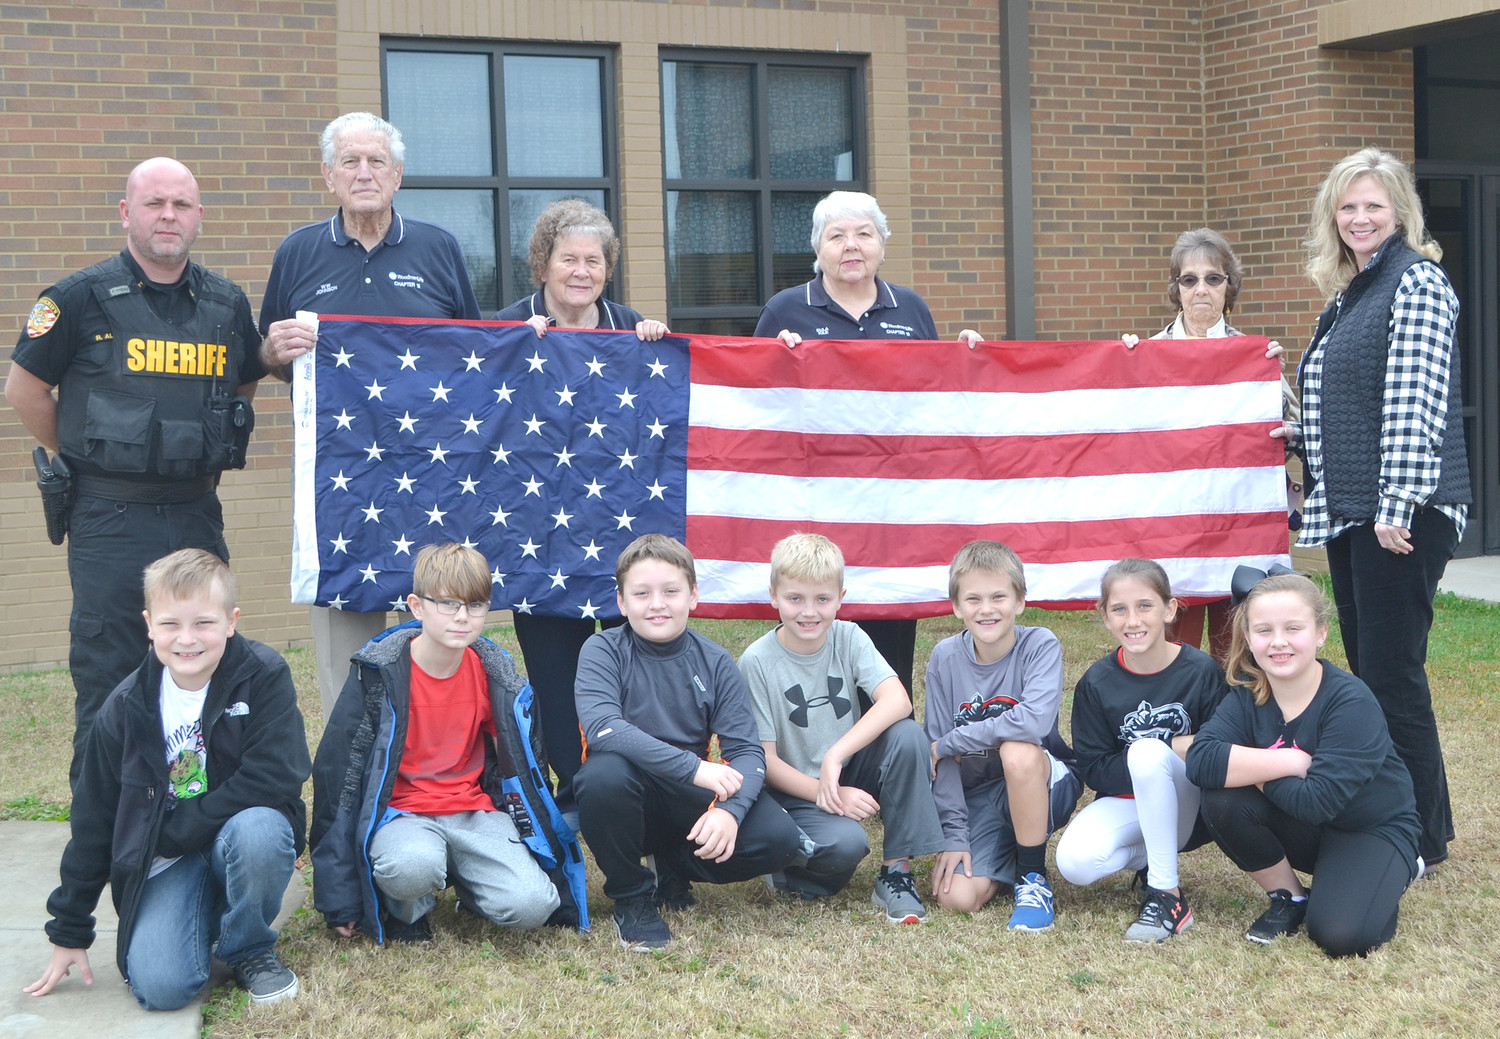 WOODMEN LIFE recently presented a U.S. flag to Park View Elementary. From left front are school patrol members Riley Crittenden, Jace Maples, Tate Rountree, Knox Gatlin, Drake Morrow, Alyssa Davenport and Lynlee Hodge. In back are Richard Allman, W.W. Johnson, Joyce Johnson, Eula Lake, Christine Miller and Jodie Grannan.